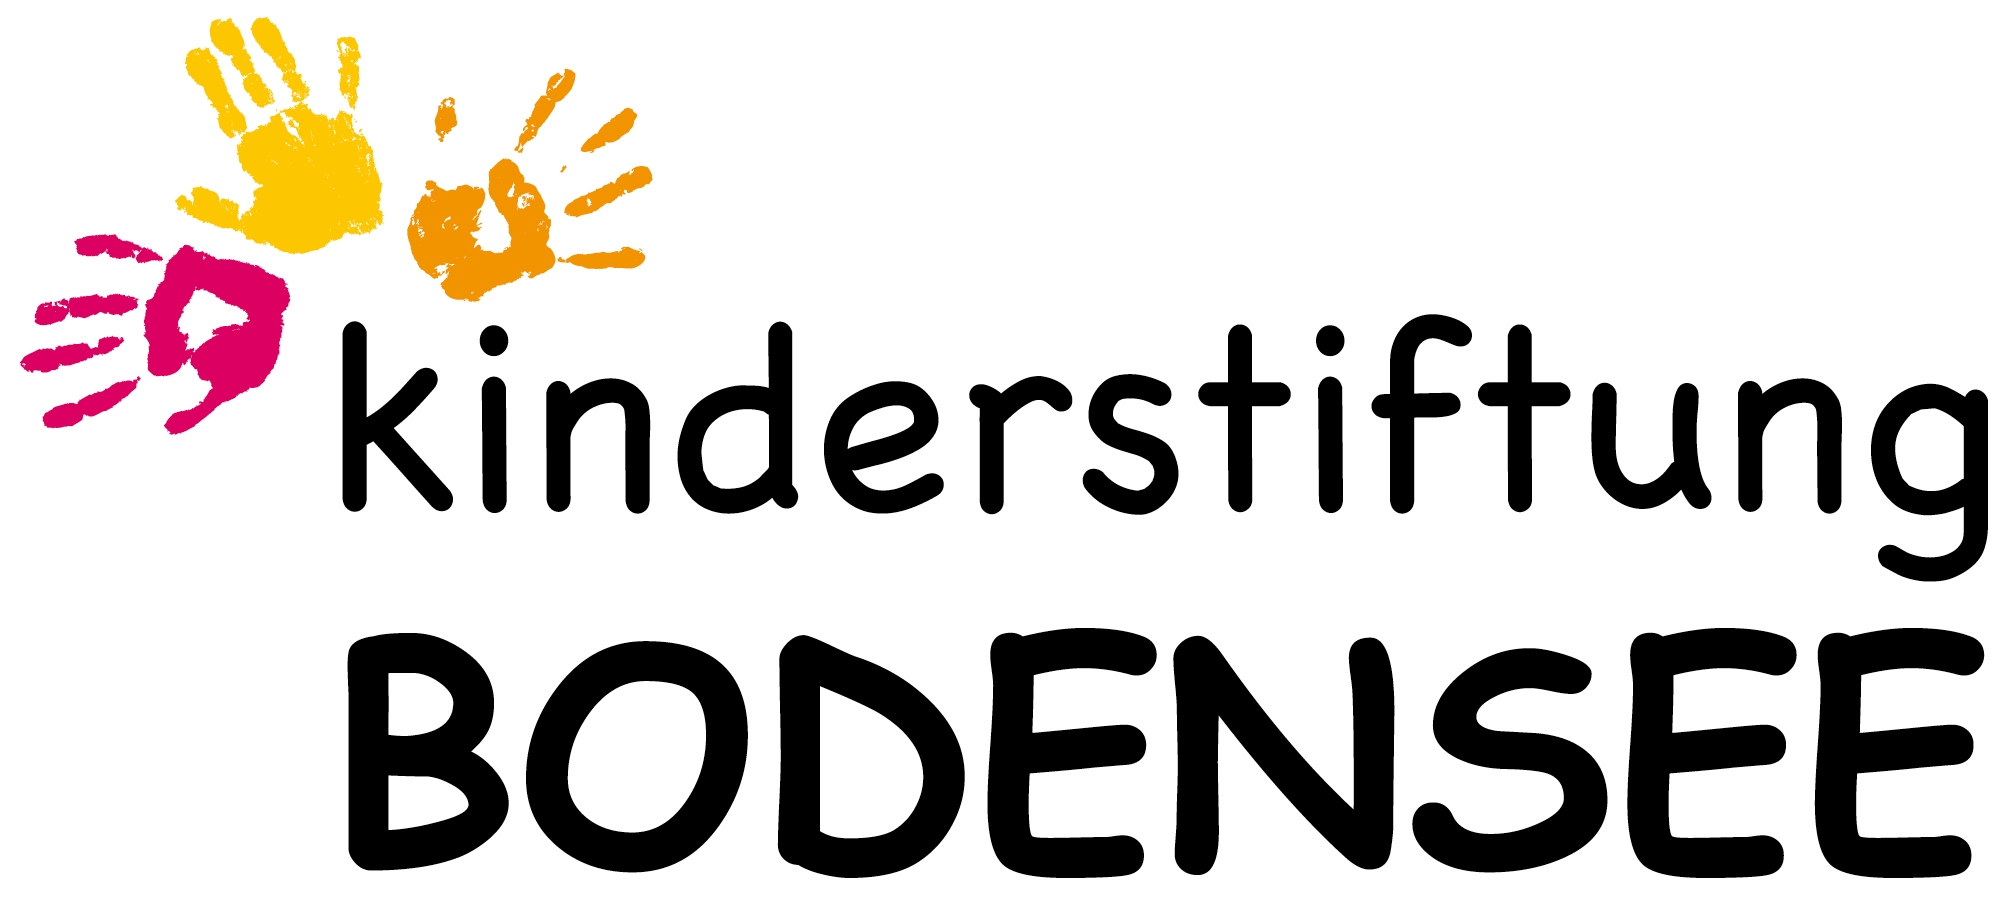 Kinderstiftung Bodensee